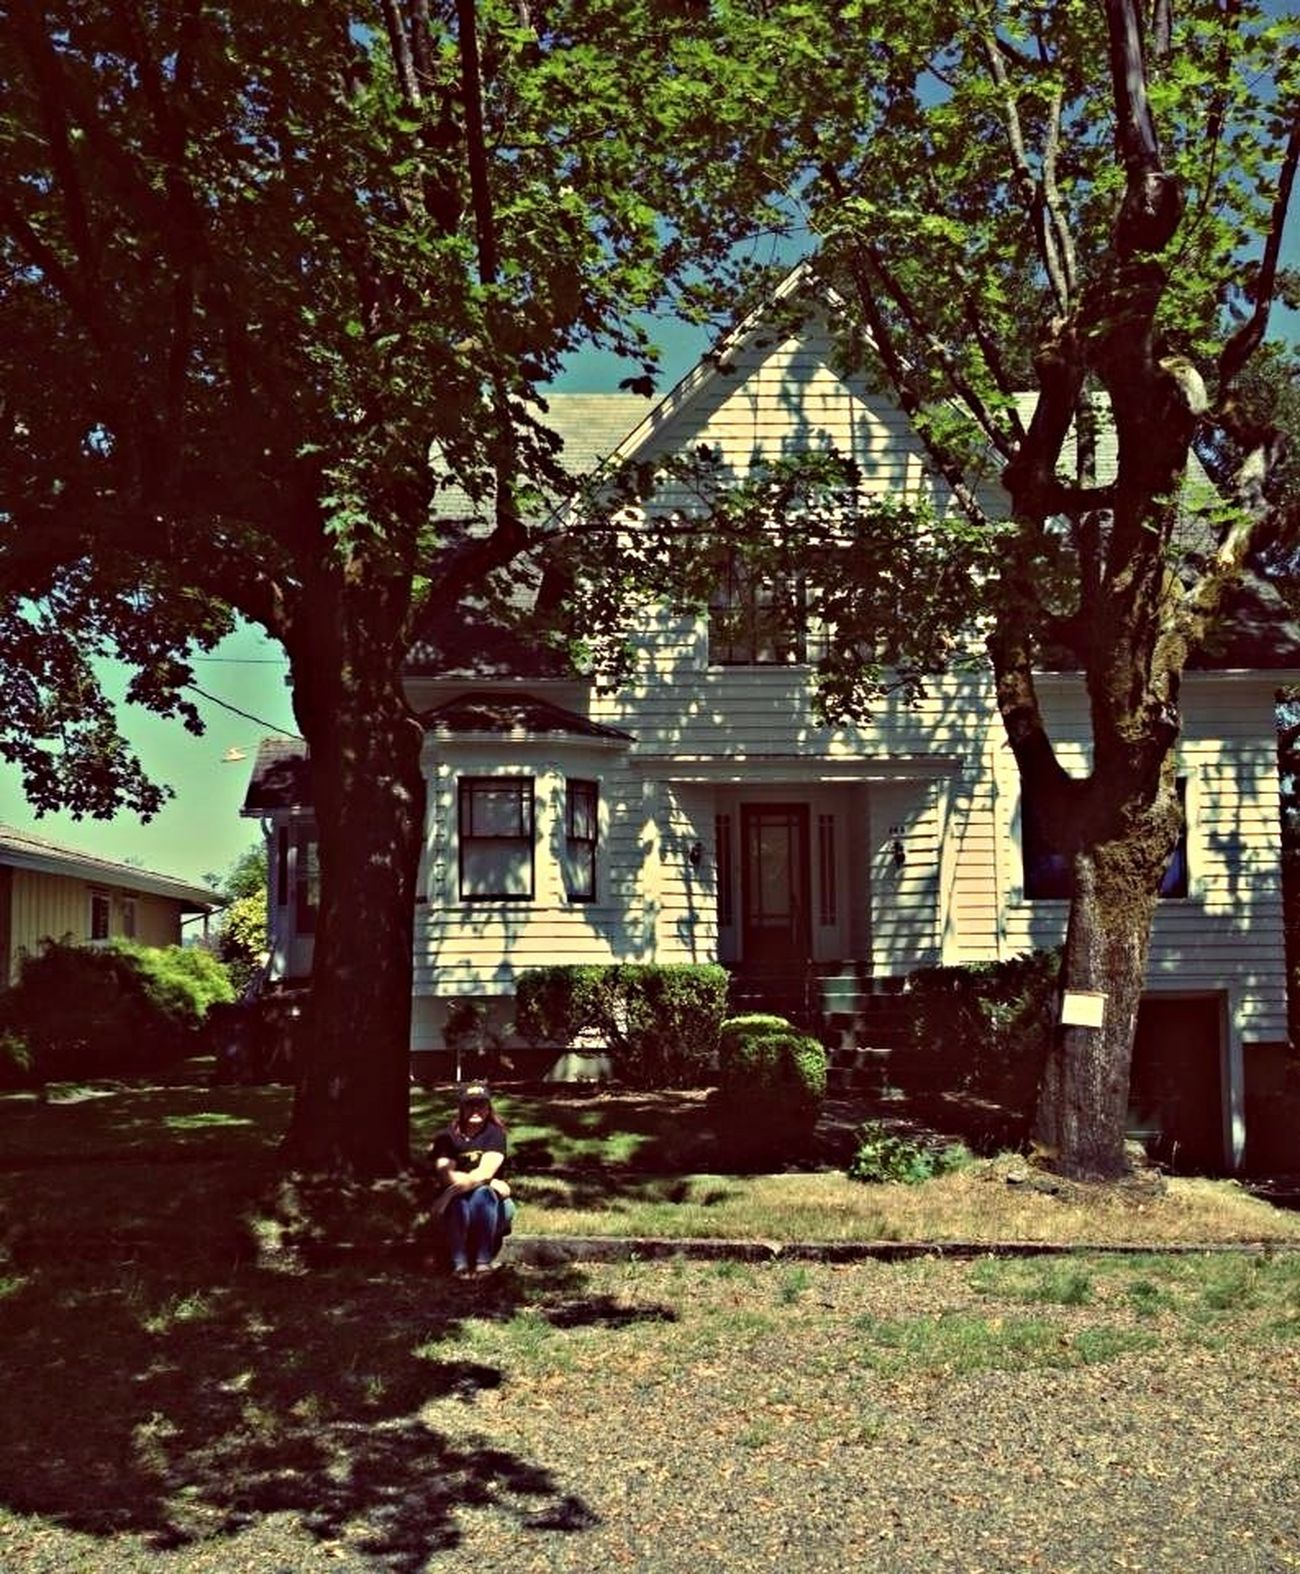 The day I found Bella's house (not a twilight fan).